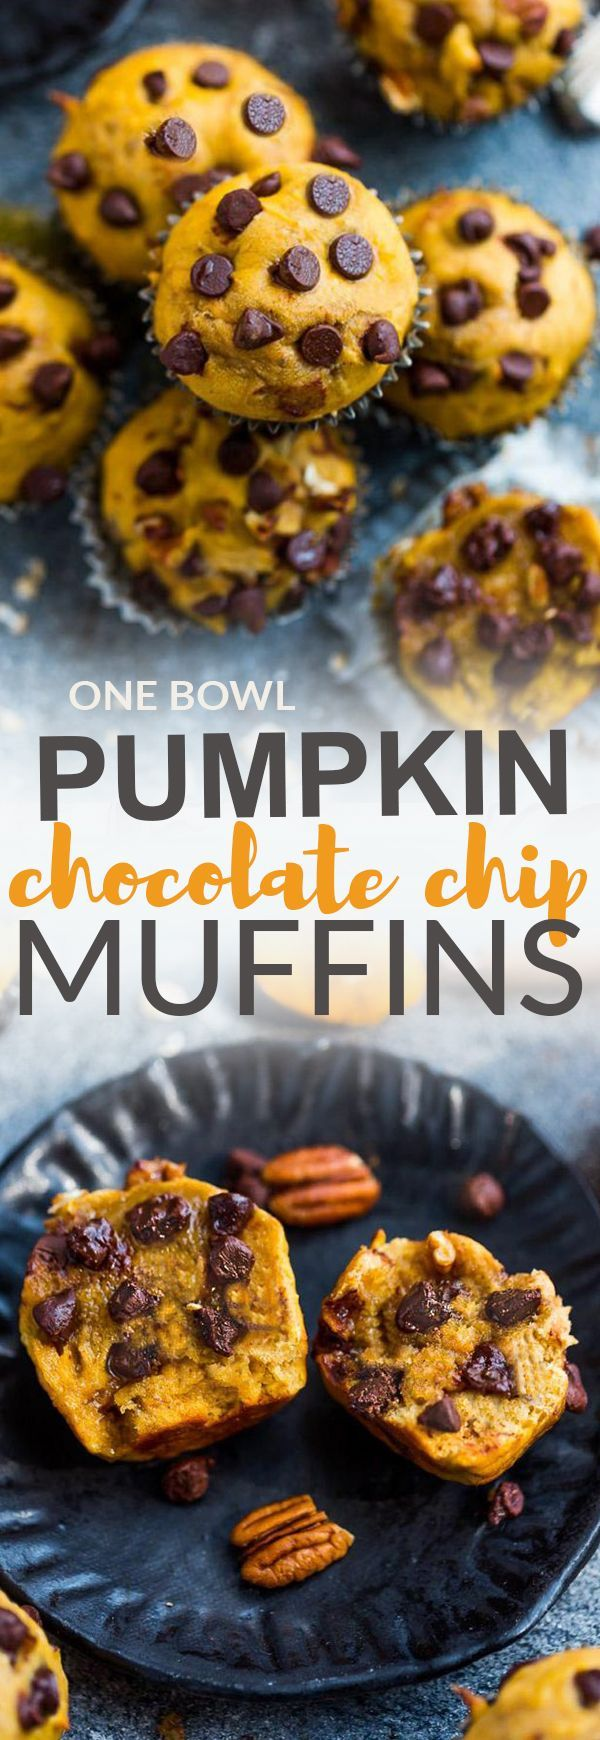 Pumpkin Chocolate Chip Muffins – the perfect easy ONE BOWL breakfast or on the go snack for fall. Best of all, they're soft, tender, moist and bursting with cozy and warm fall flavors. A delicious autumn treat for packing in school lunchboxes or an afters